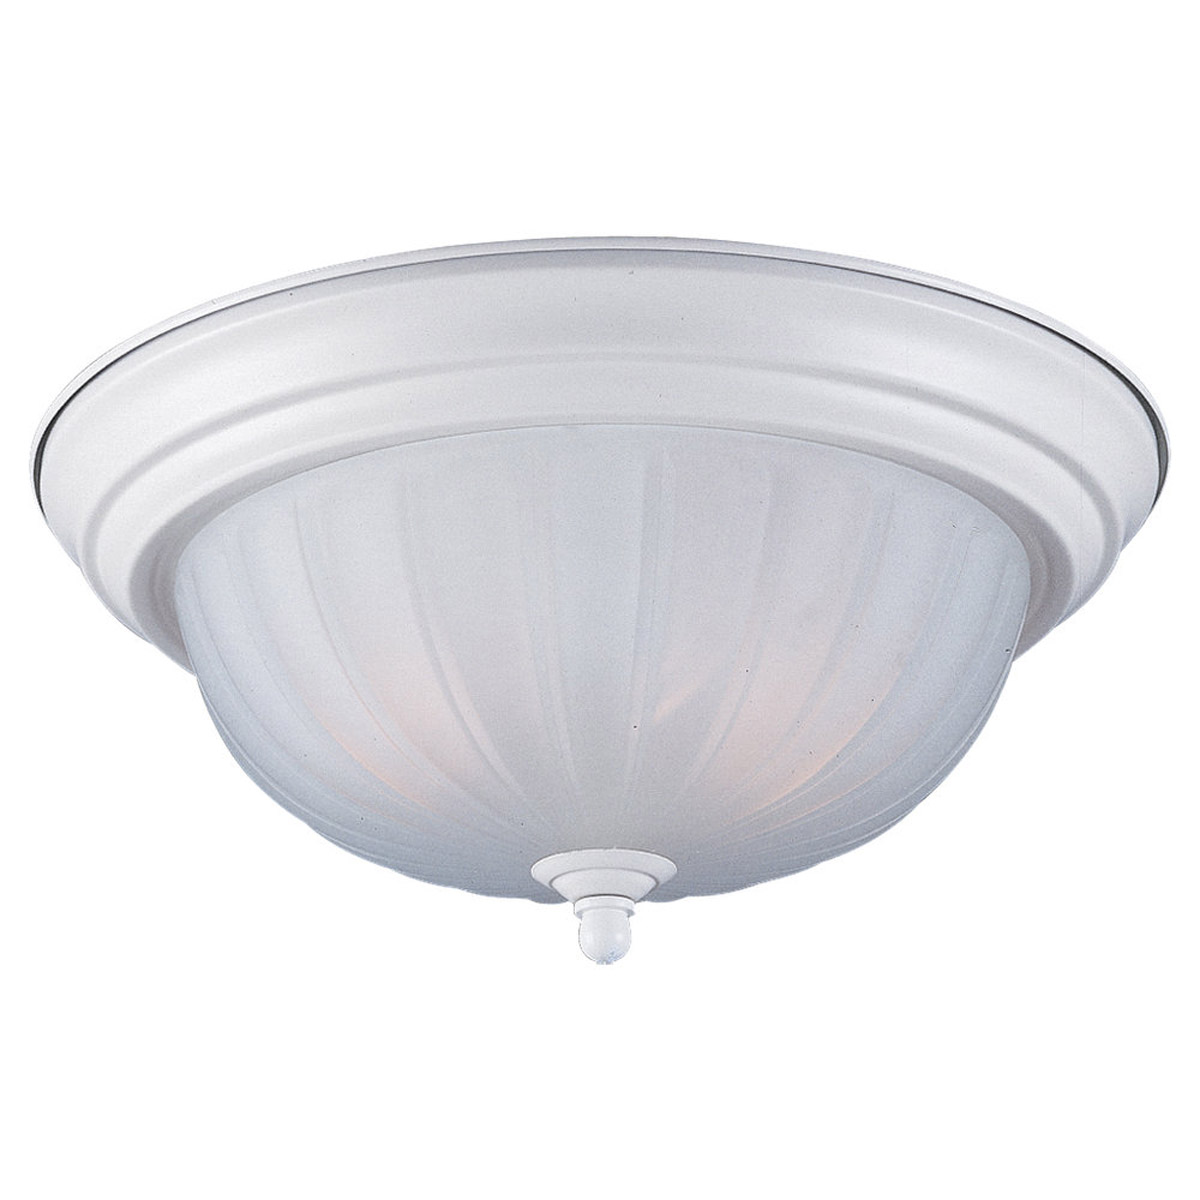 Sea Gull Lighting Floyd 1 Light Flush Mount in White 7504-15 photo